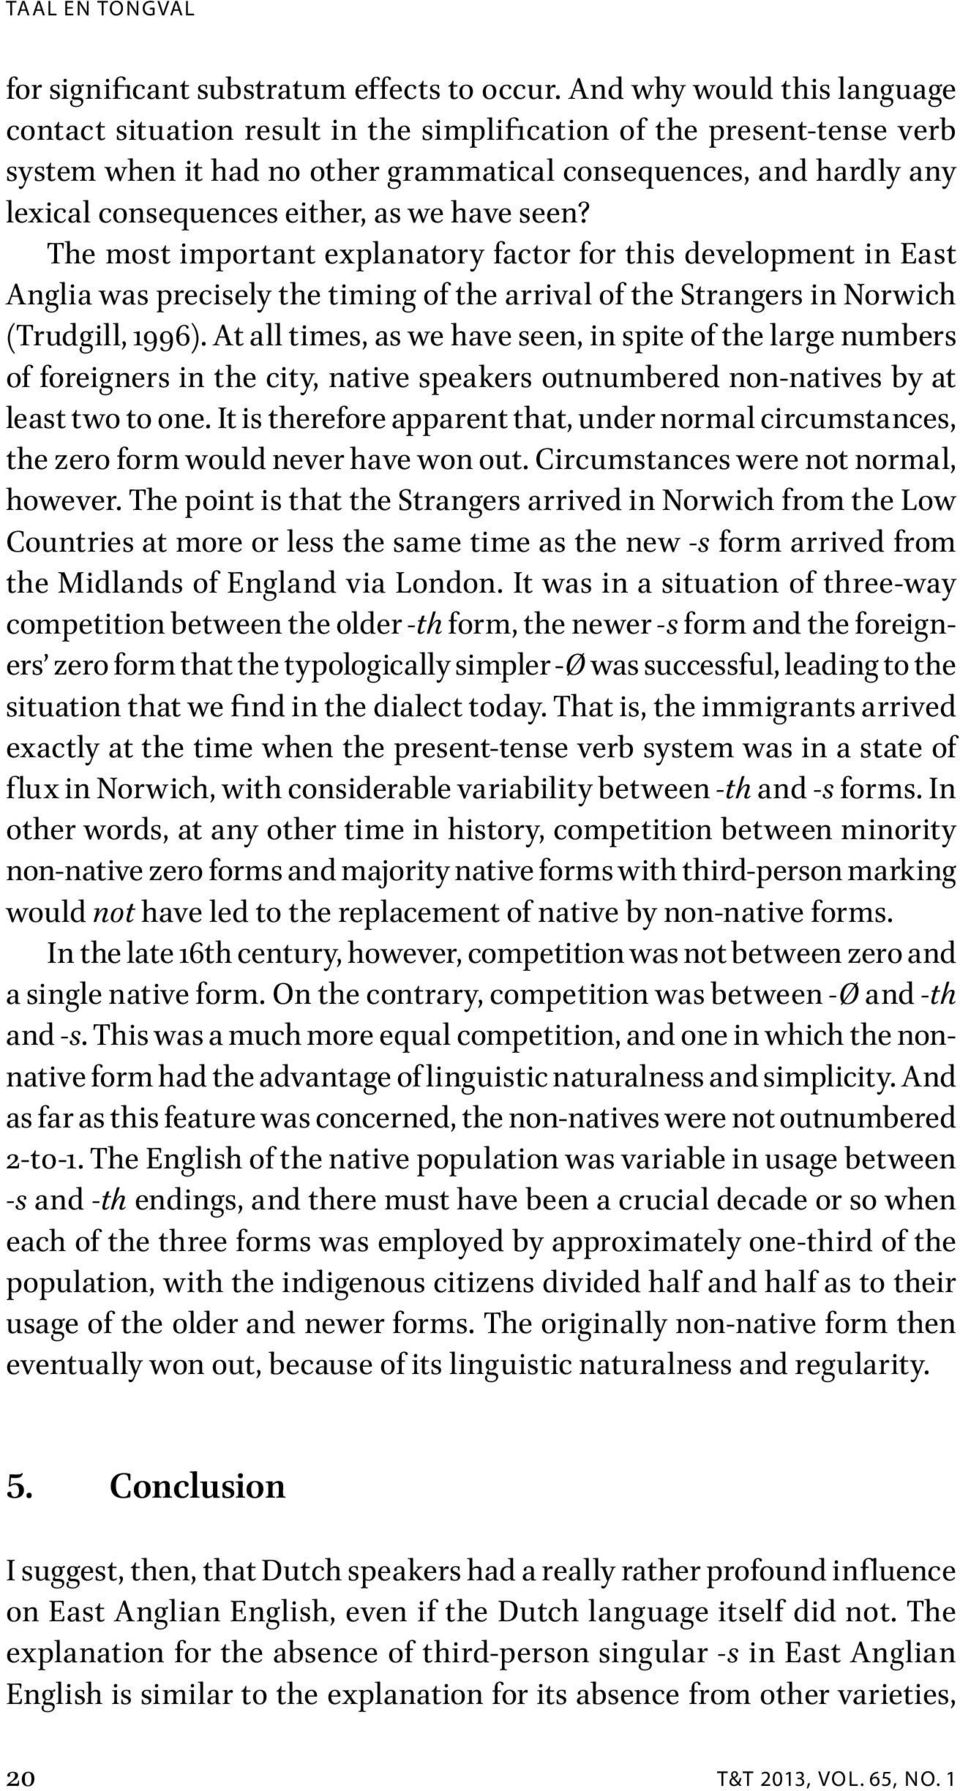 as we have seen? The most important explanatory factor for this development in East Anglia was precisely the timing of the arrival of the Strangers in Norwich (Trudgill, 1996).